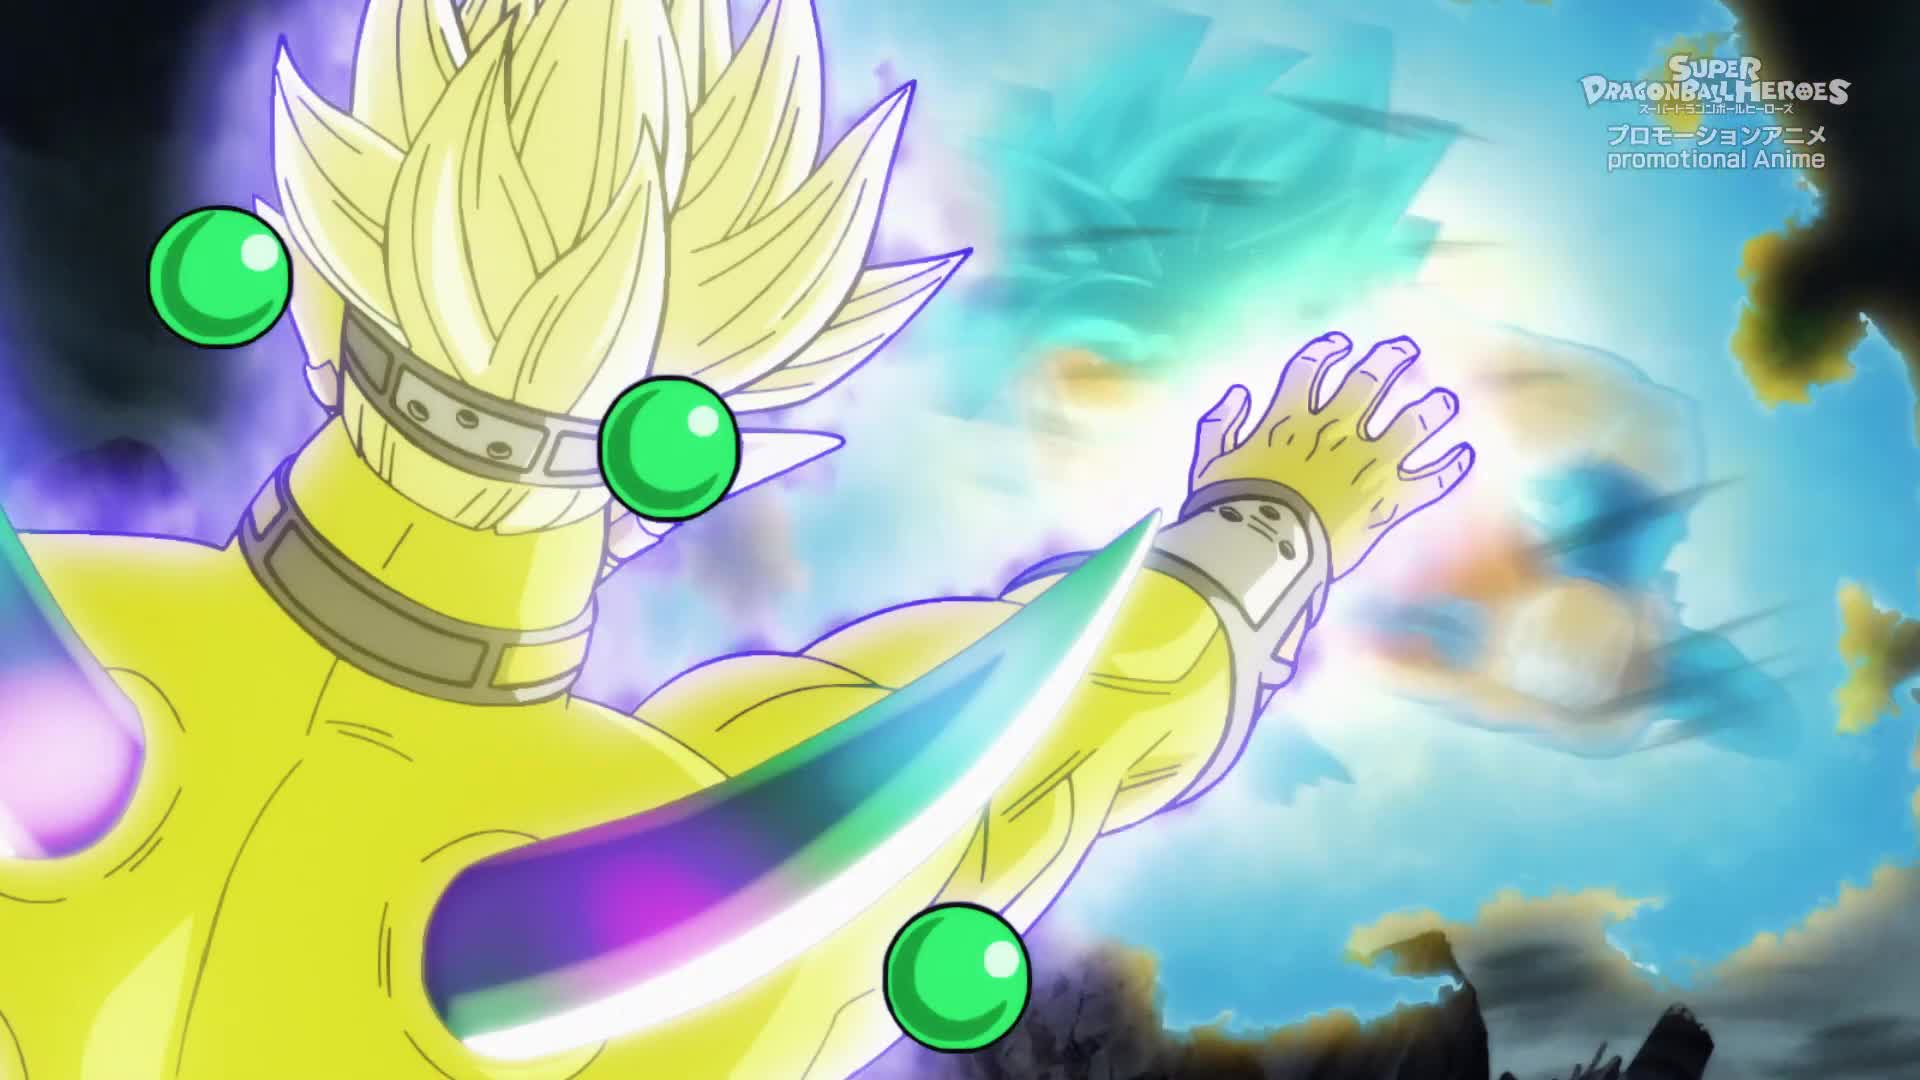 y2mate.com - super_dragon_ball_heroes_episode_17_gogeta_returns_iws-xMZVPRw_1080p_1498.jpg